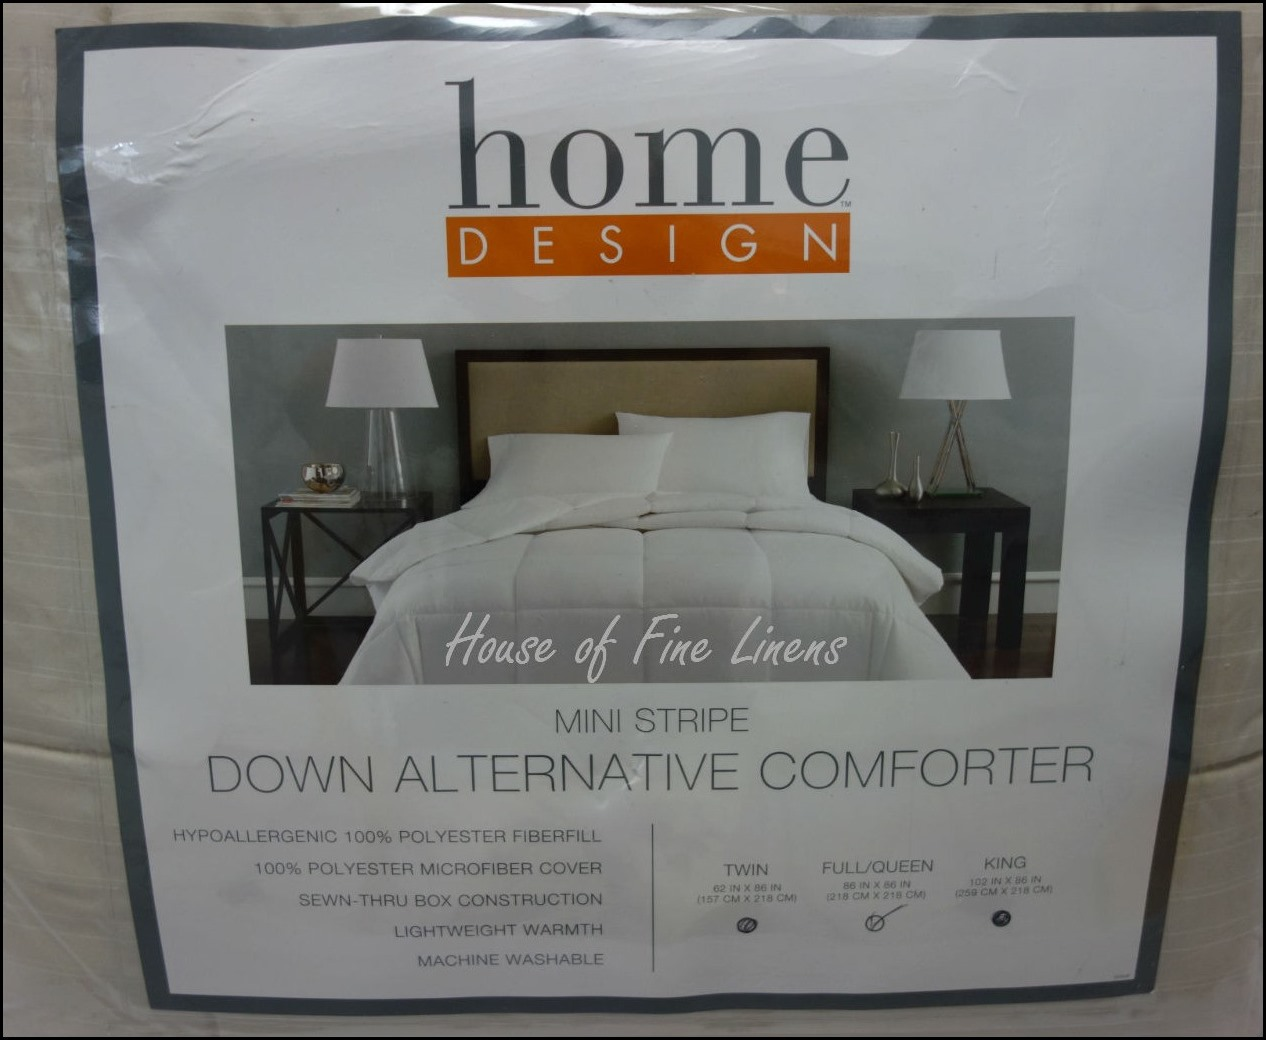 Home Design Down Alternative Comforter